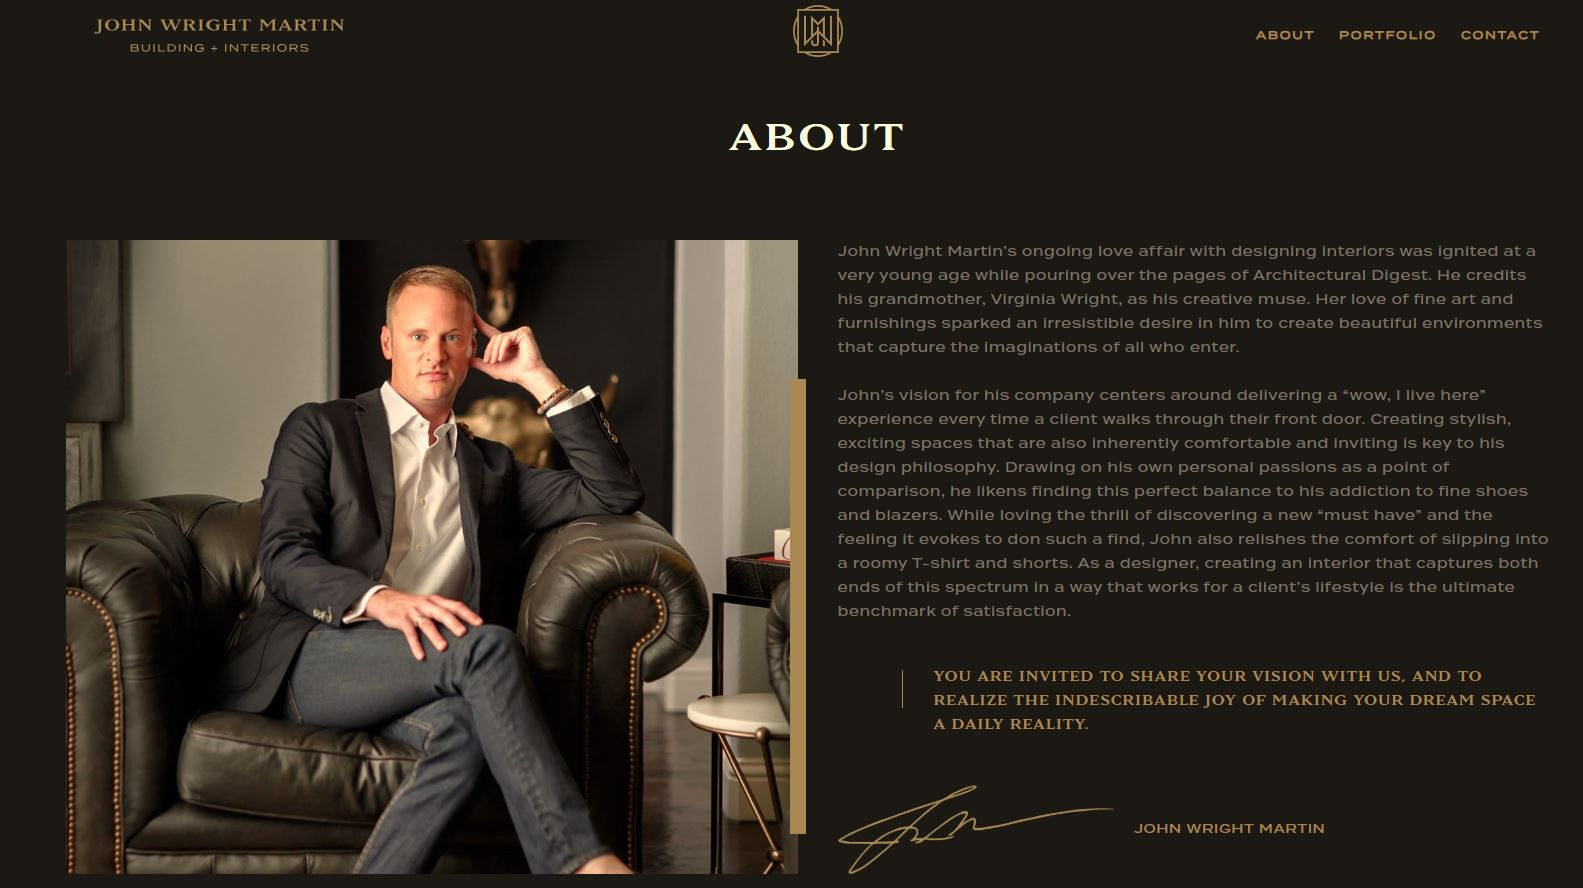 This image from John Wright Martin's website for JWM Designs LLC explains his passion for interior design.